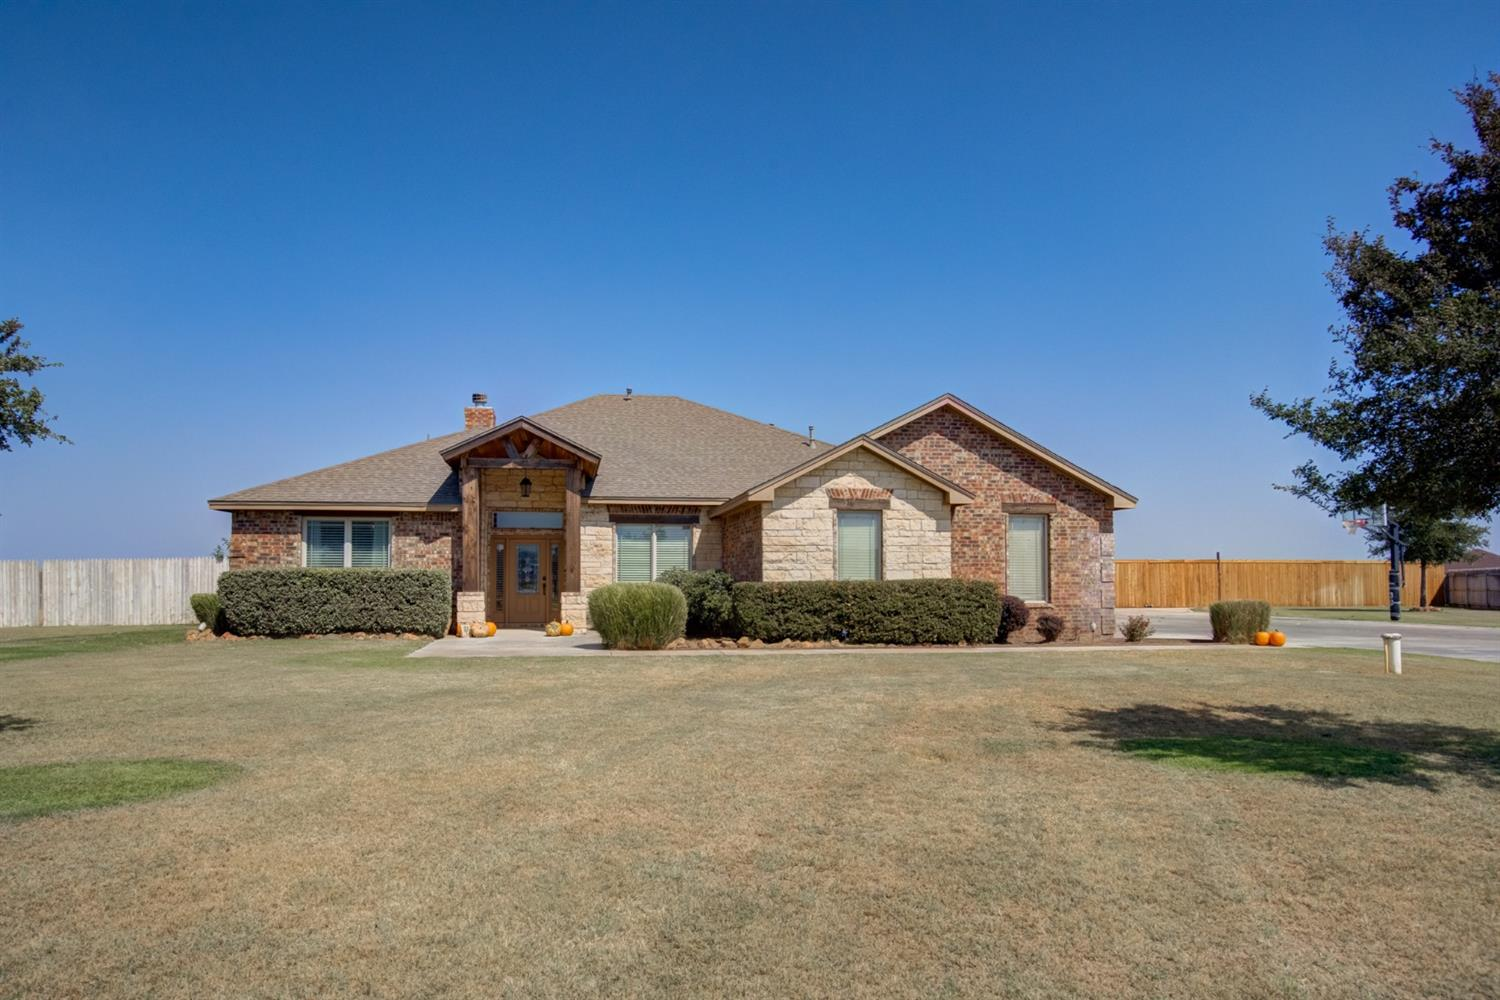 Don't miss this 4/3/2 home in a quiet cul de sac in the Timber Ridge subdivision located on one acre. As you walk in the front door, you will love the open concept living room, beautiful fireplace, and dining room.  The kitchen has freshly painted white cabinets, an island and breakfast bar, and double-ovens.  Right off the kitchen is a bonus room that is perfect for a playroom or office.  The Master bedroom is a great size and the Master bathroom has a seperate air flow tub and large shower.  The other bedrooms are the perfect size for children, guests, or even an office.  Relax on the nice back patio and enjoy the backyard that has plenty of room for a playset or trampoline.  There is even an extra side yard space with a small shed. Come see this beautiful home today!